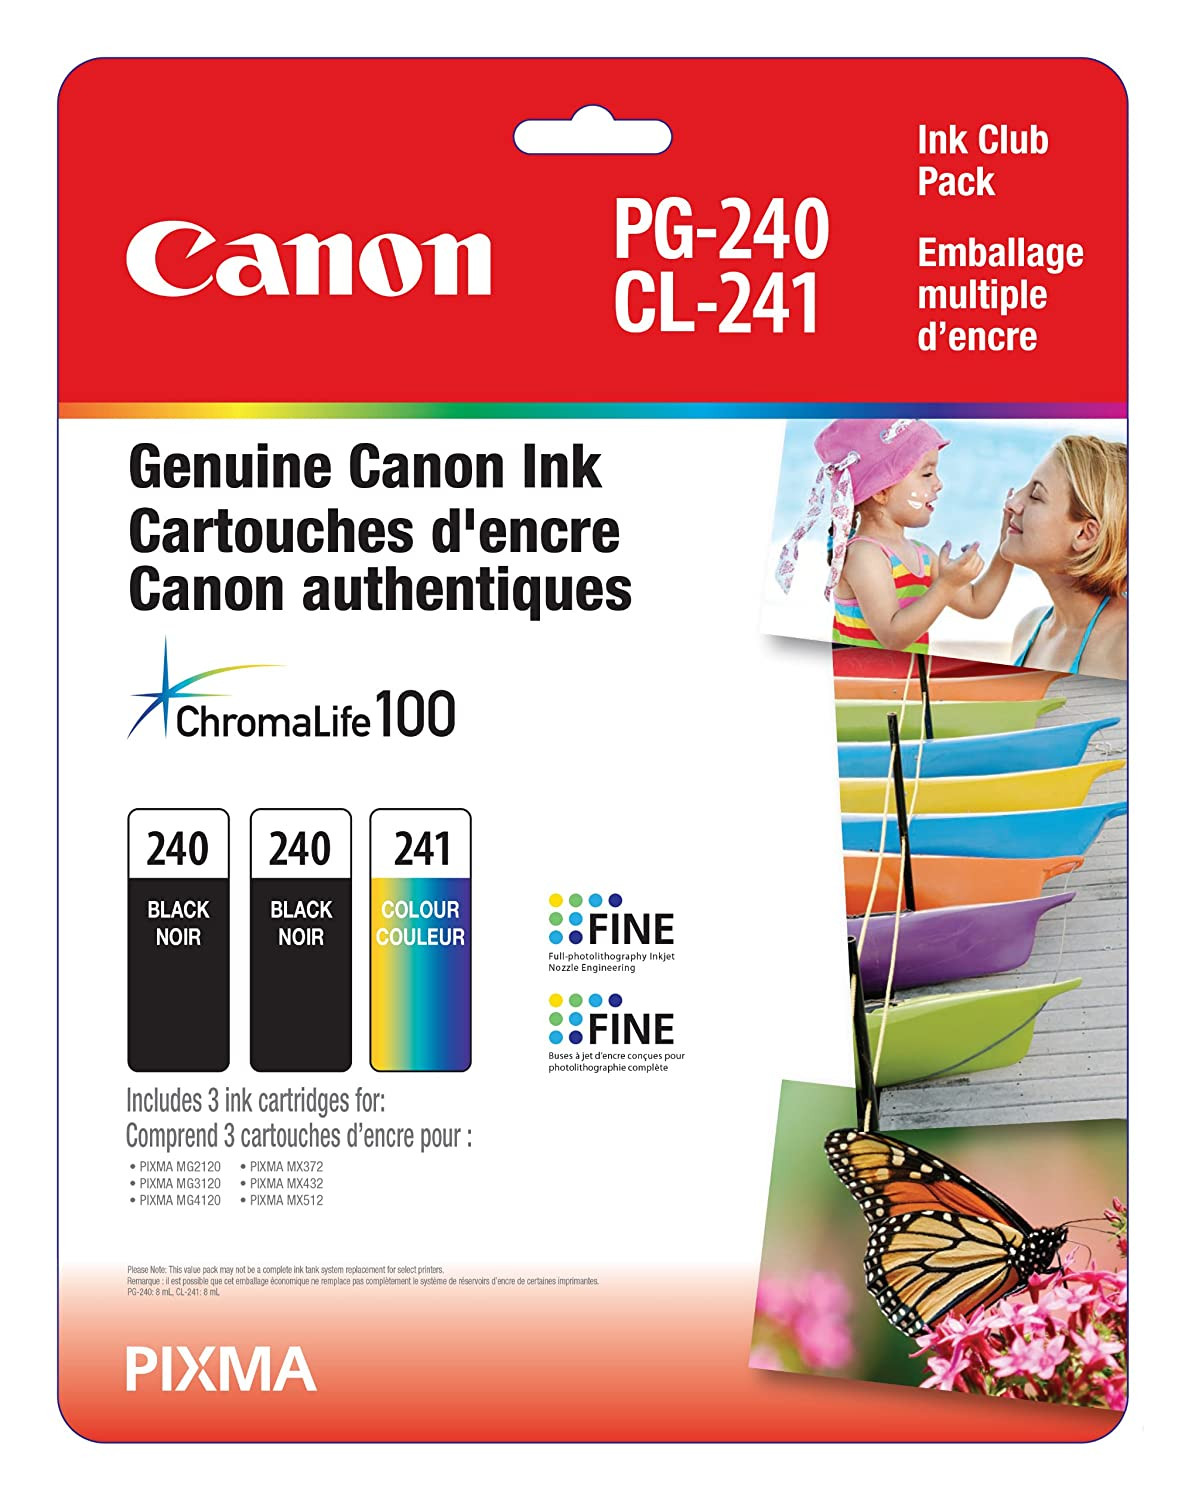 Genuine Canon PG-240 Twin CL-241 Ink Cartrige Club Pack, 2 Black and 1 Tri-Colour - 5207B005